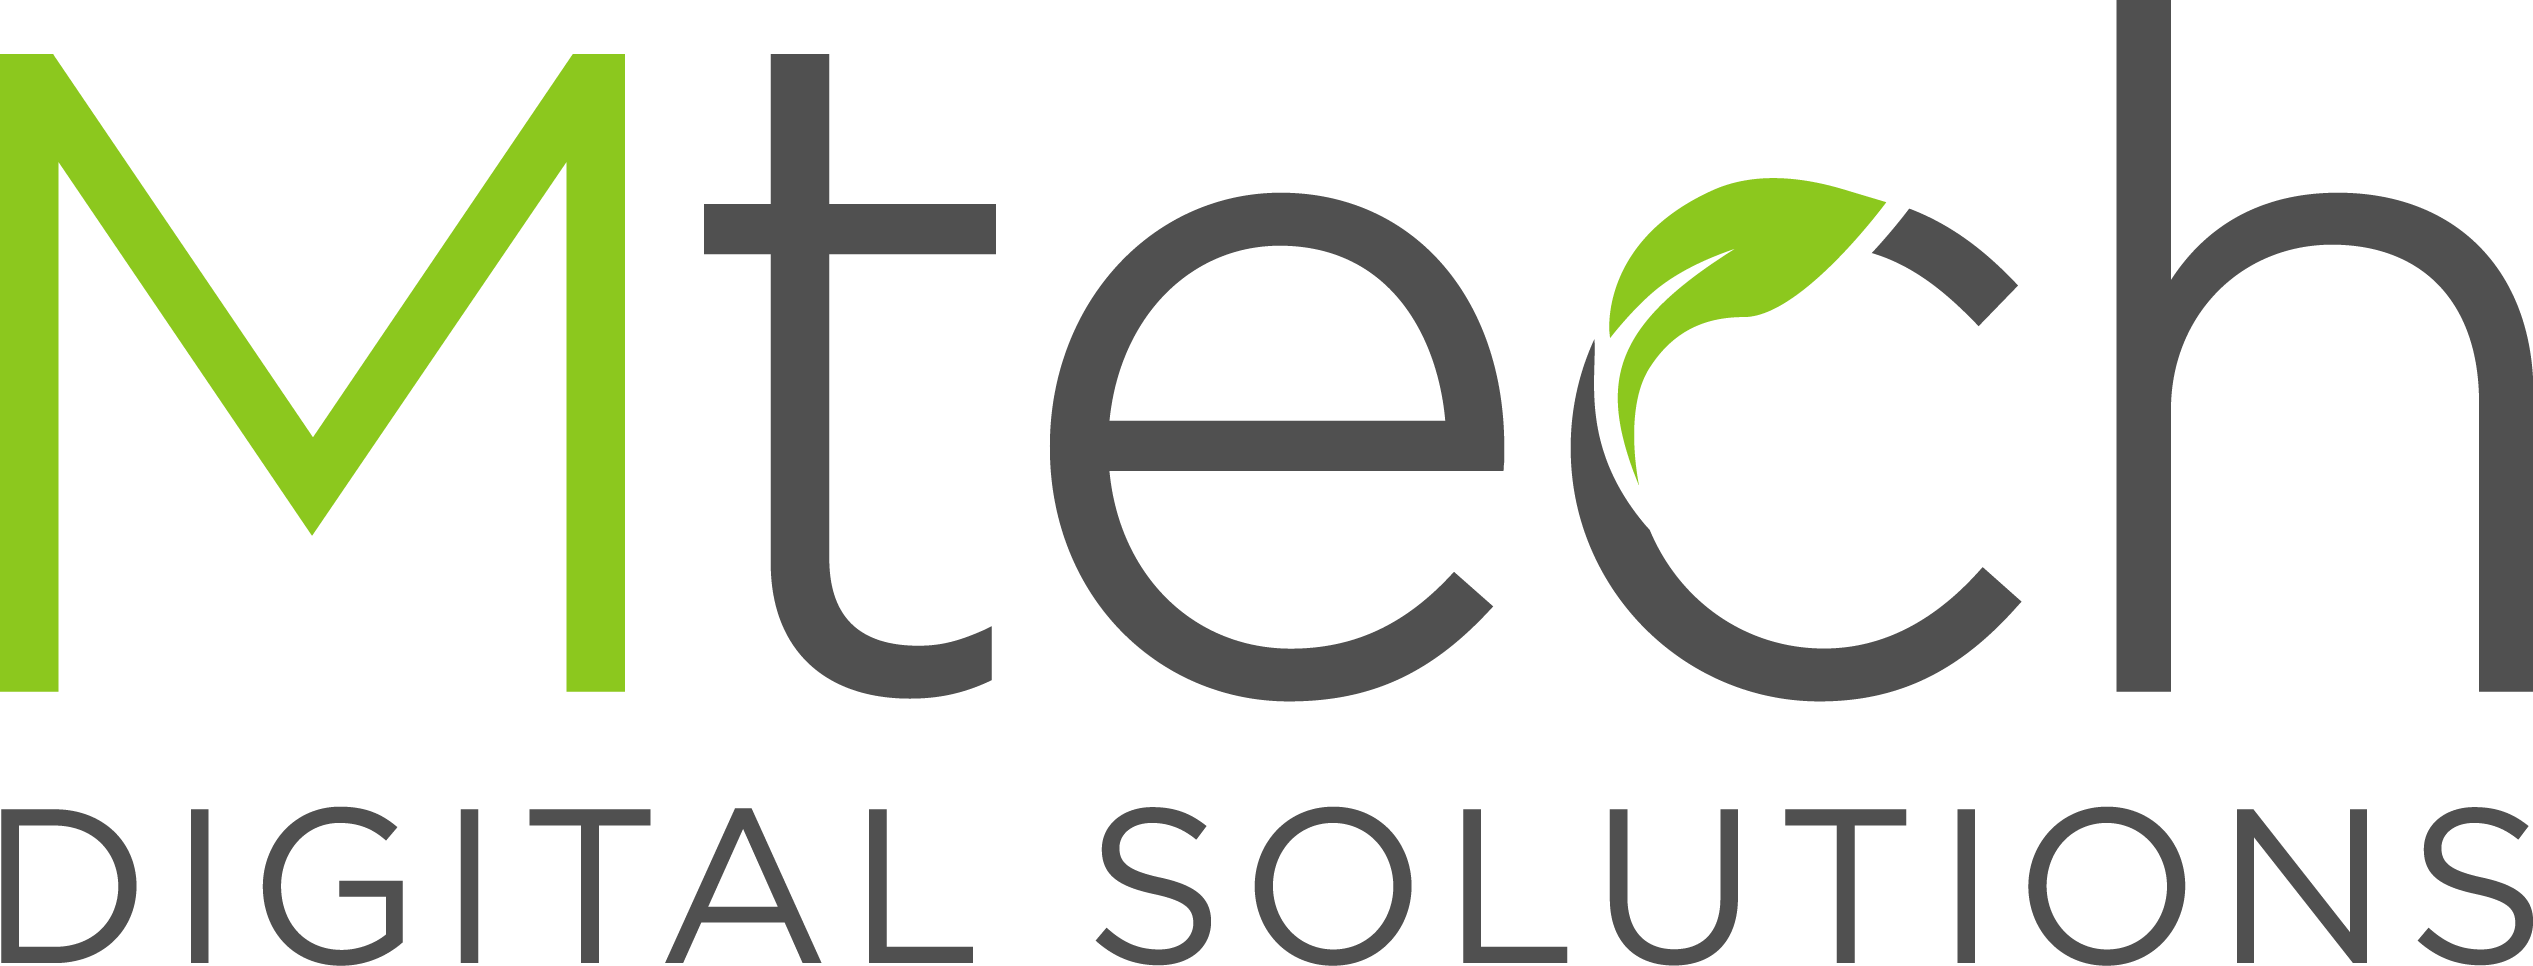 Mtech Digital Solutions Oy